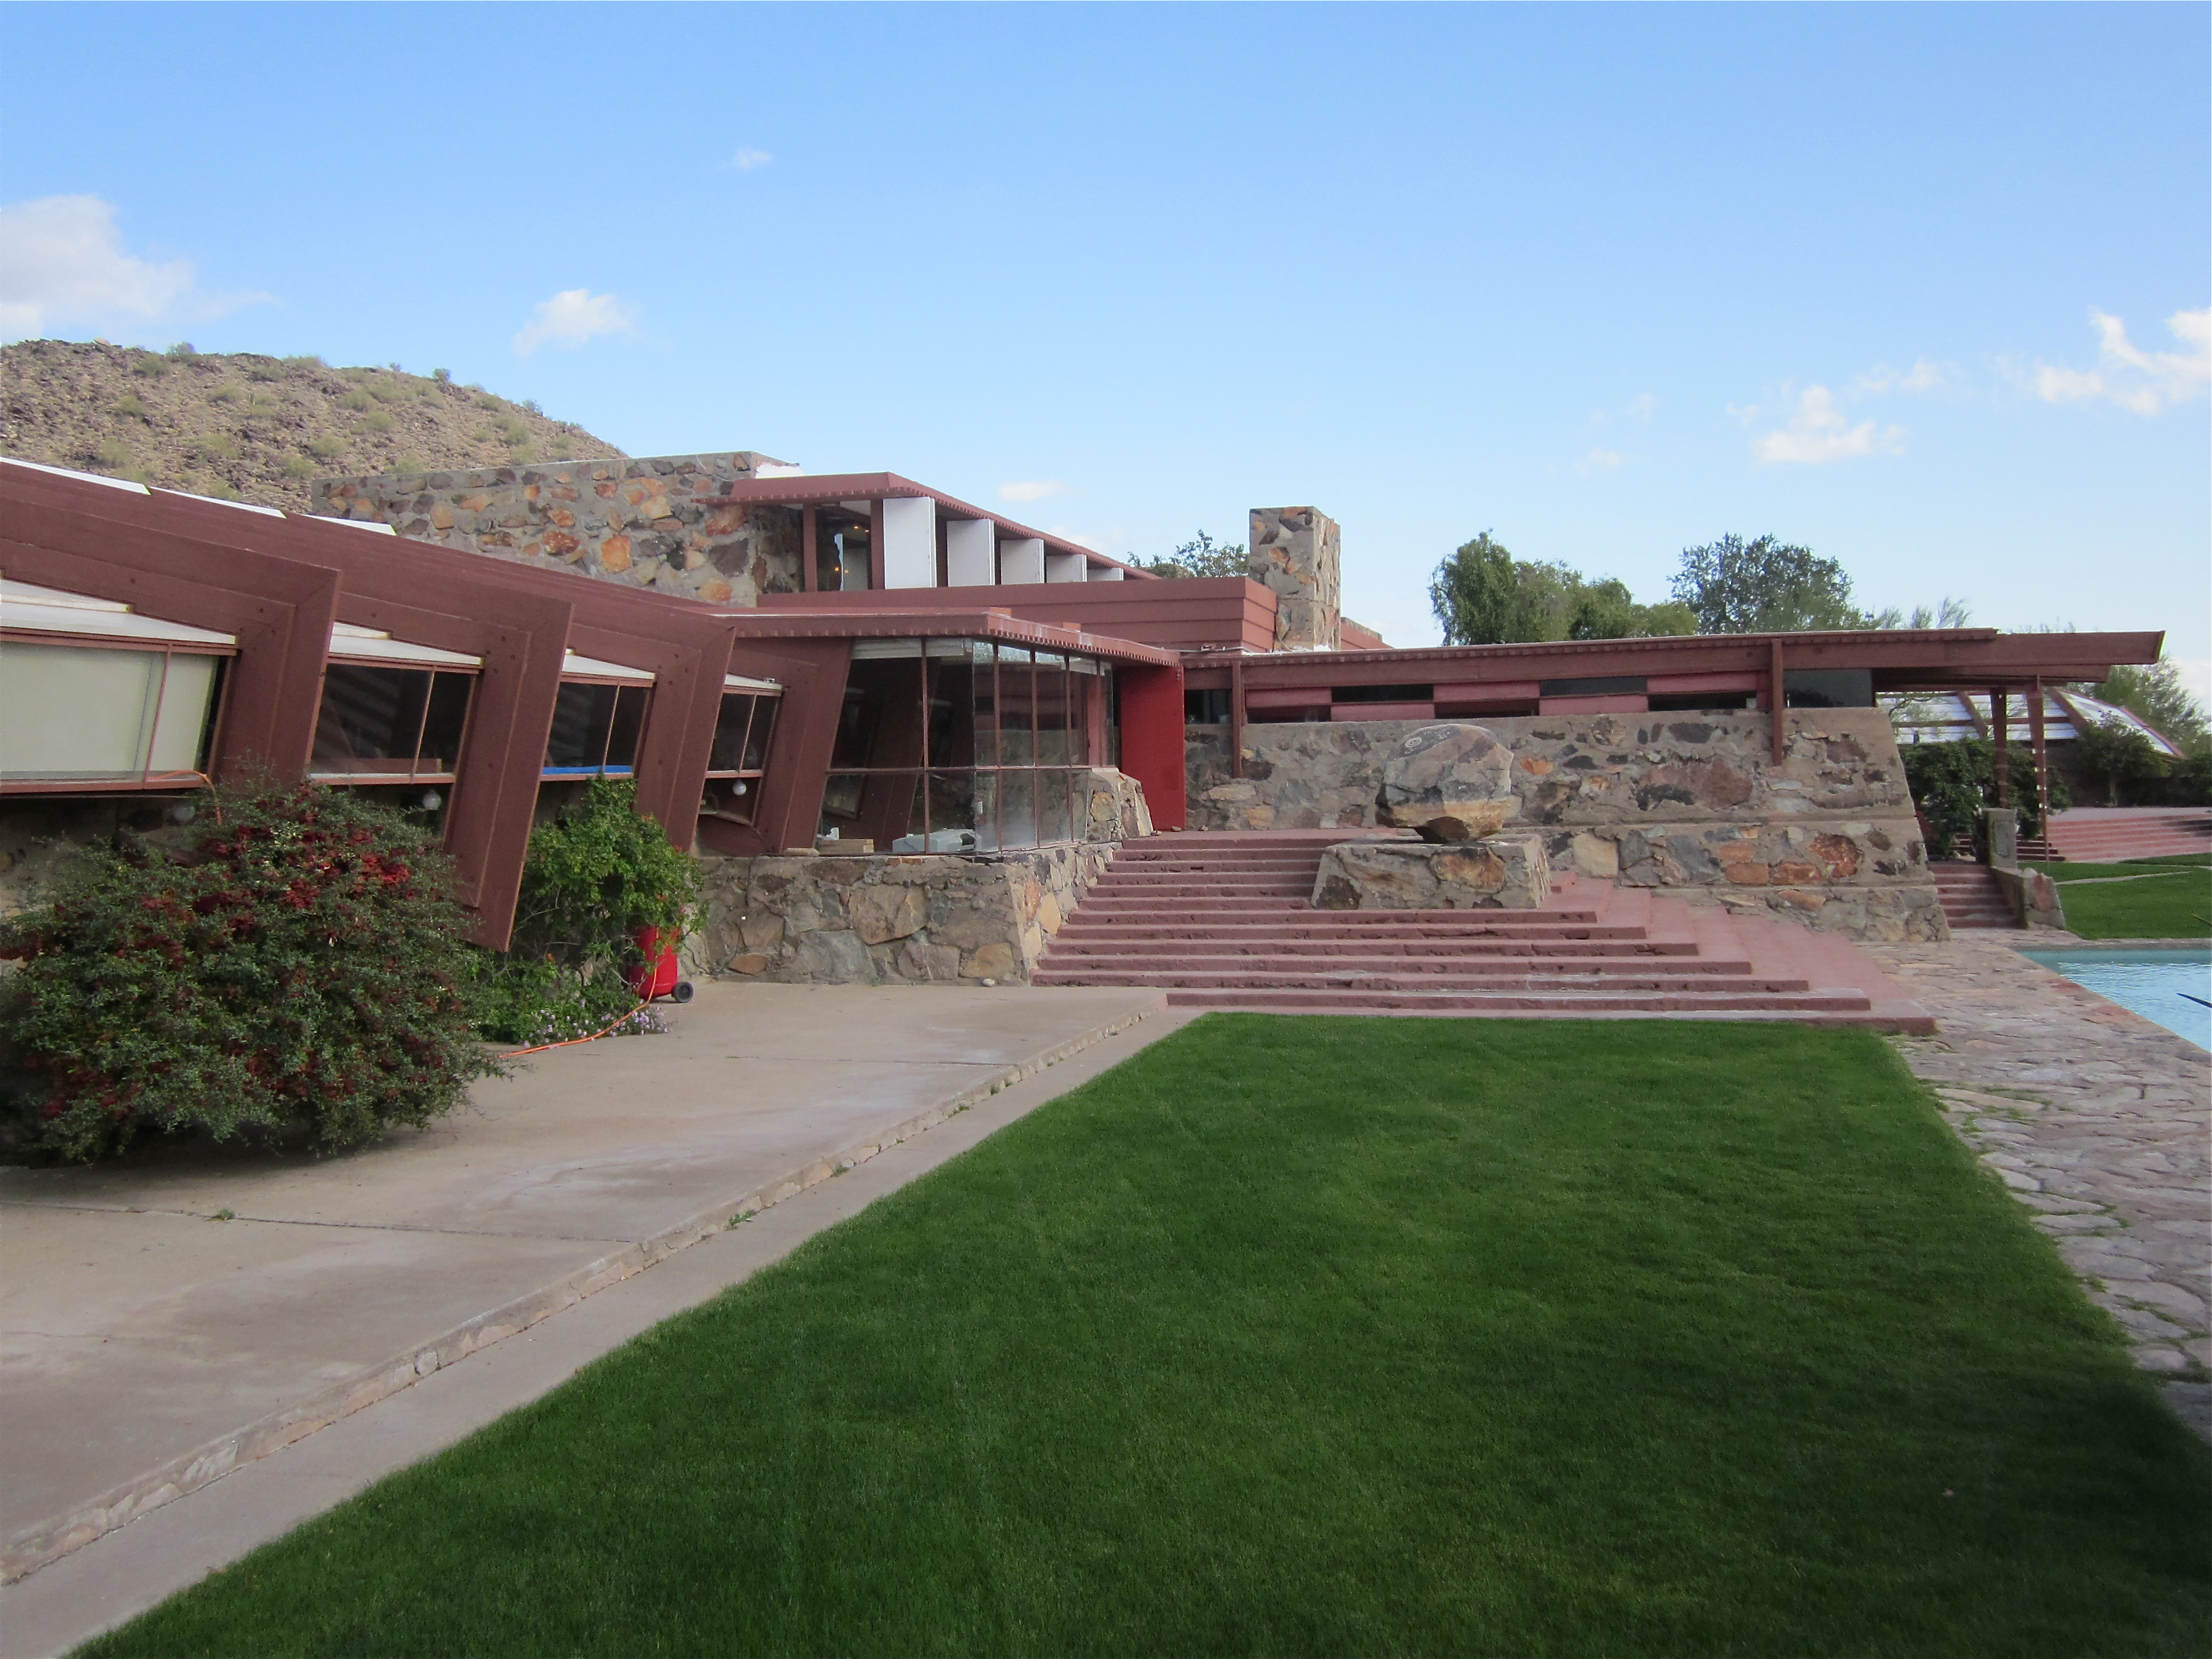 Taliesin West-Frank Lloyd Wright in Arizona | What Next?